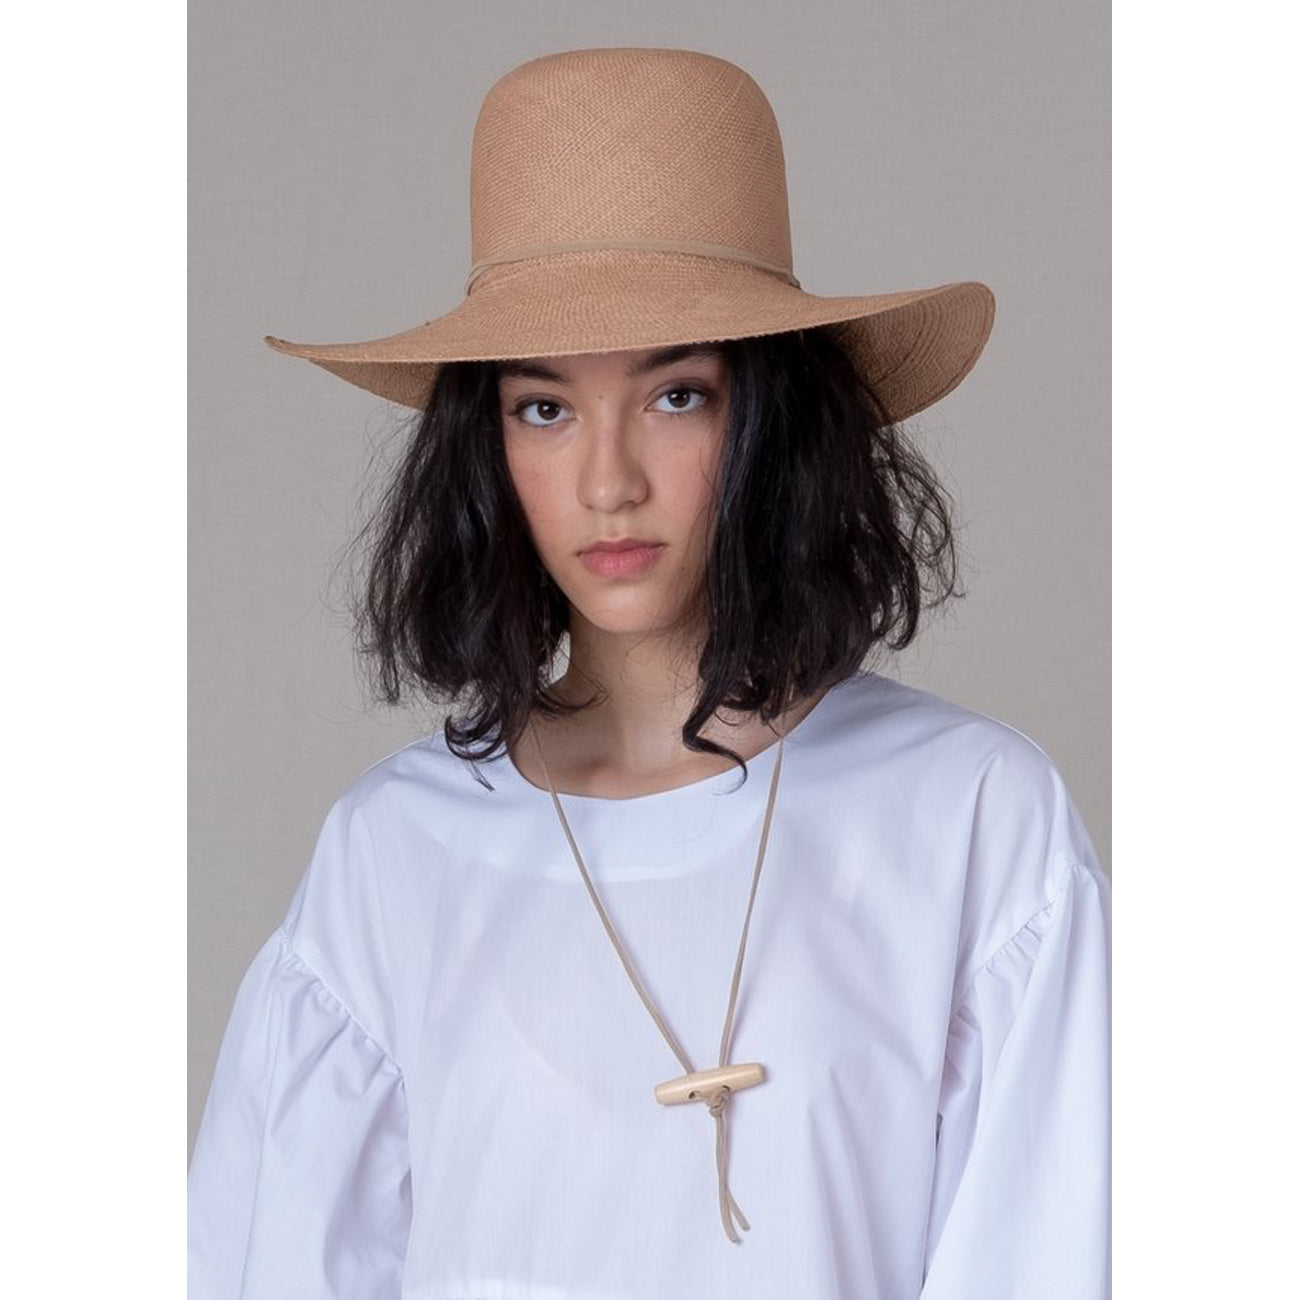 suncrest hat in tan